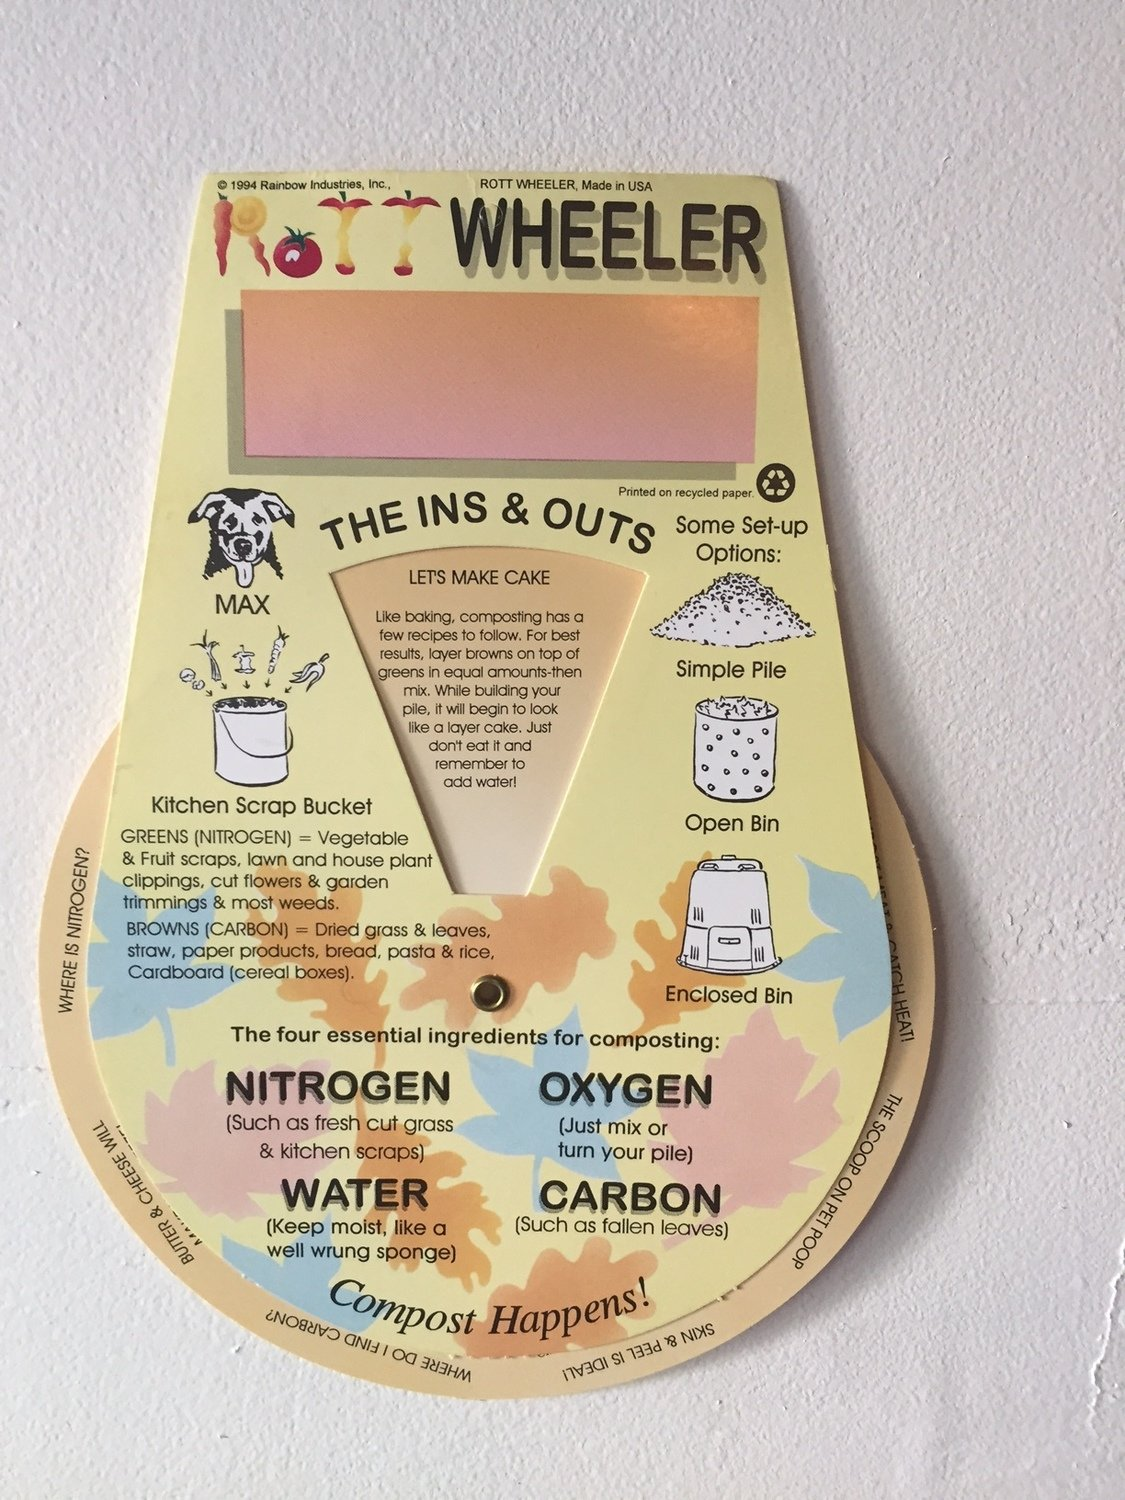 Rottwheeler - educational dial (recommended.)